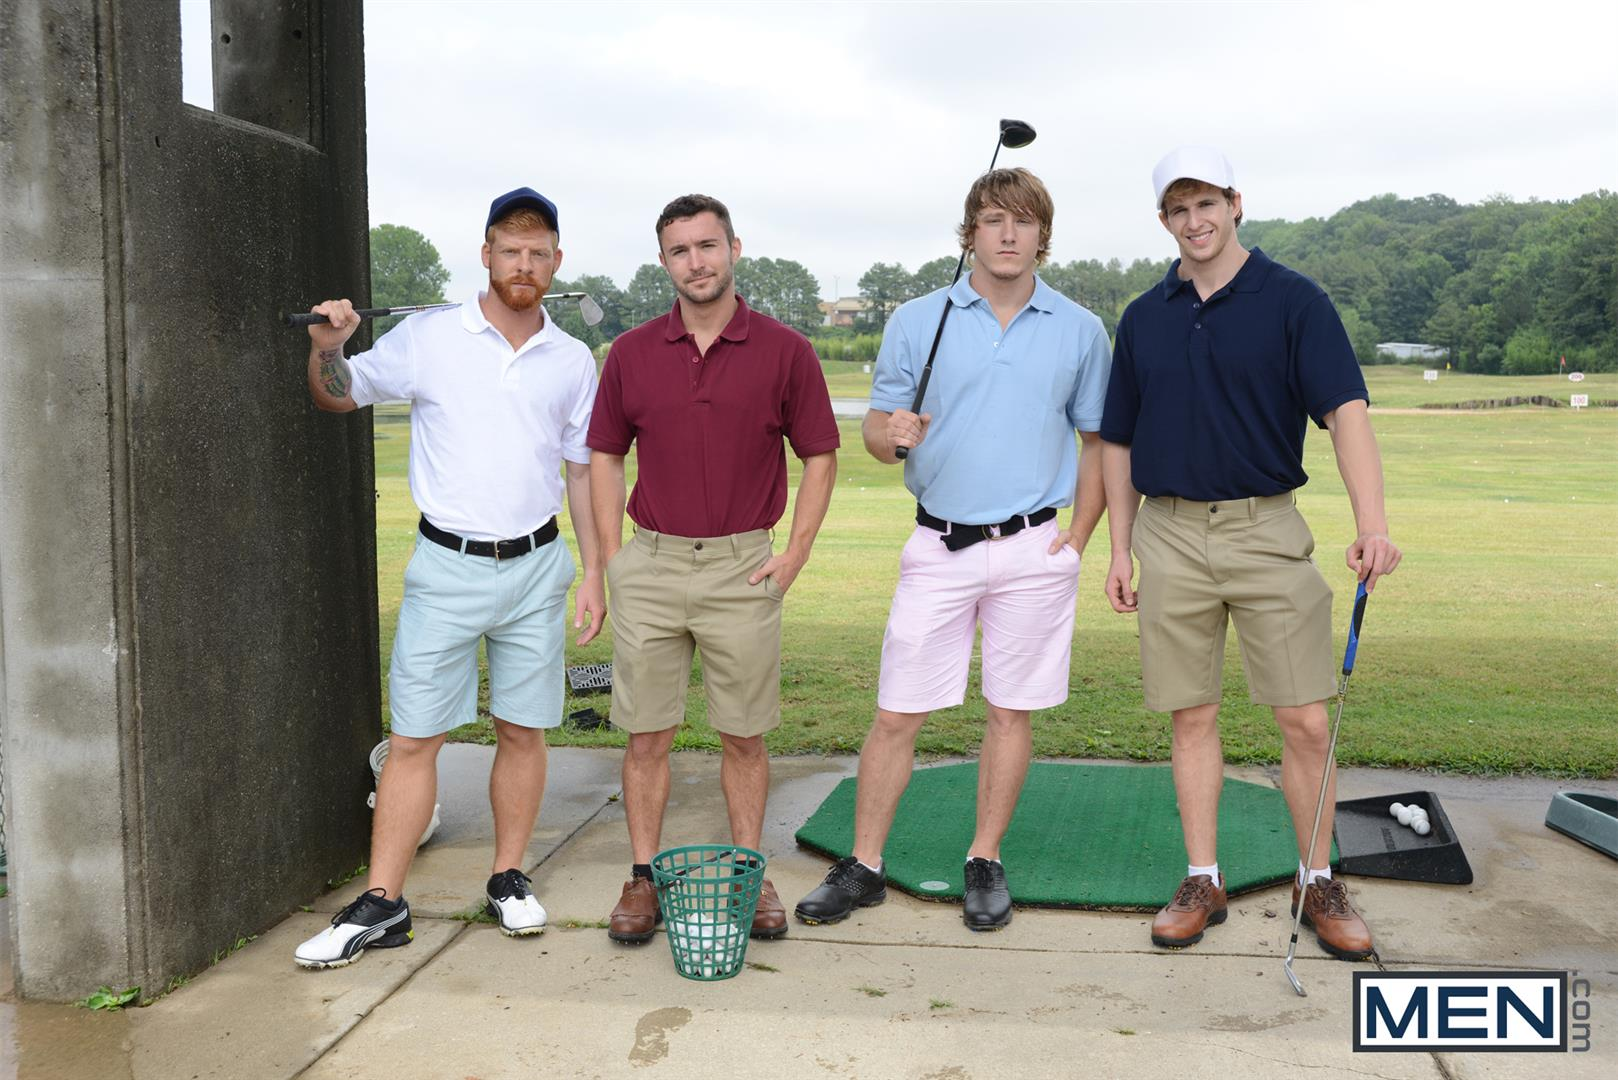 Men-Jizz-Orgy-Swingers-Bennett-Anthony-and-Cameron-Foster-and-Colt-Rivers-and-Tom-Faulk-Fucking-Bathroom-Amateur-Gay-Porn-21 Hung Golfing Buddies Fucking In The Bathroom and Clubhouse